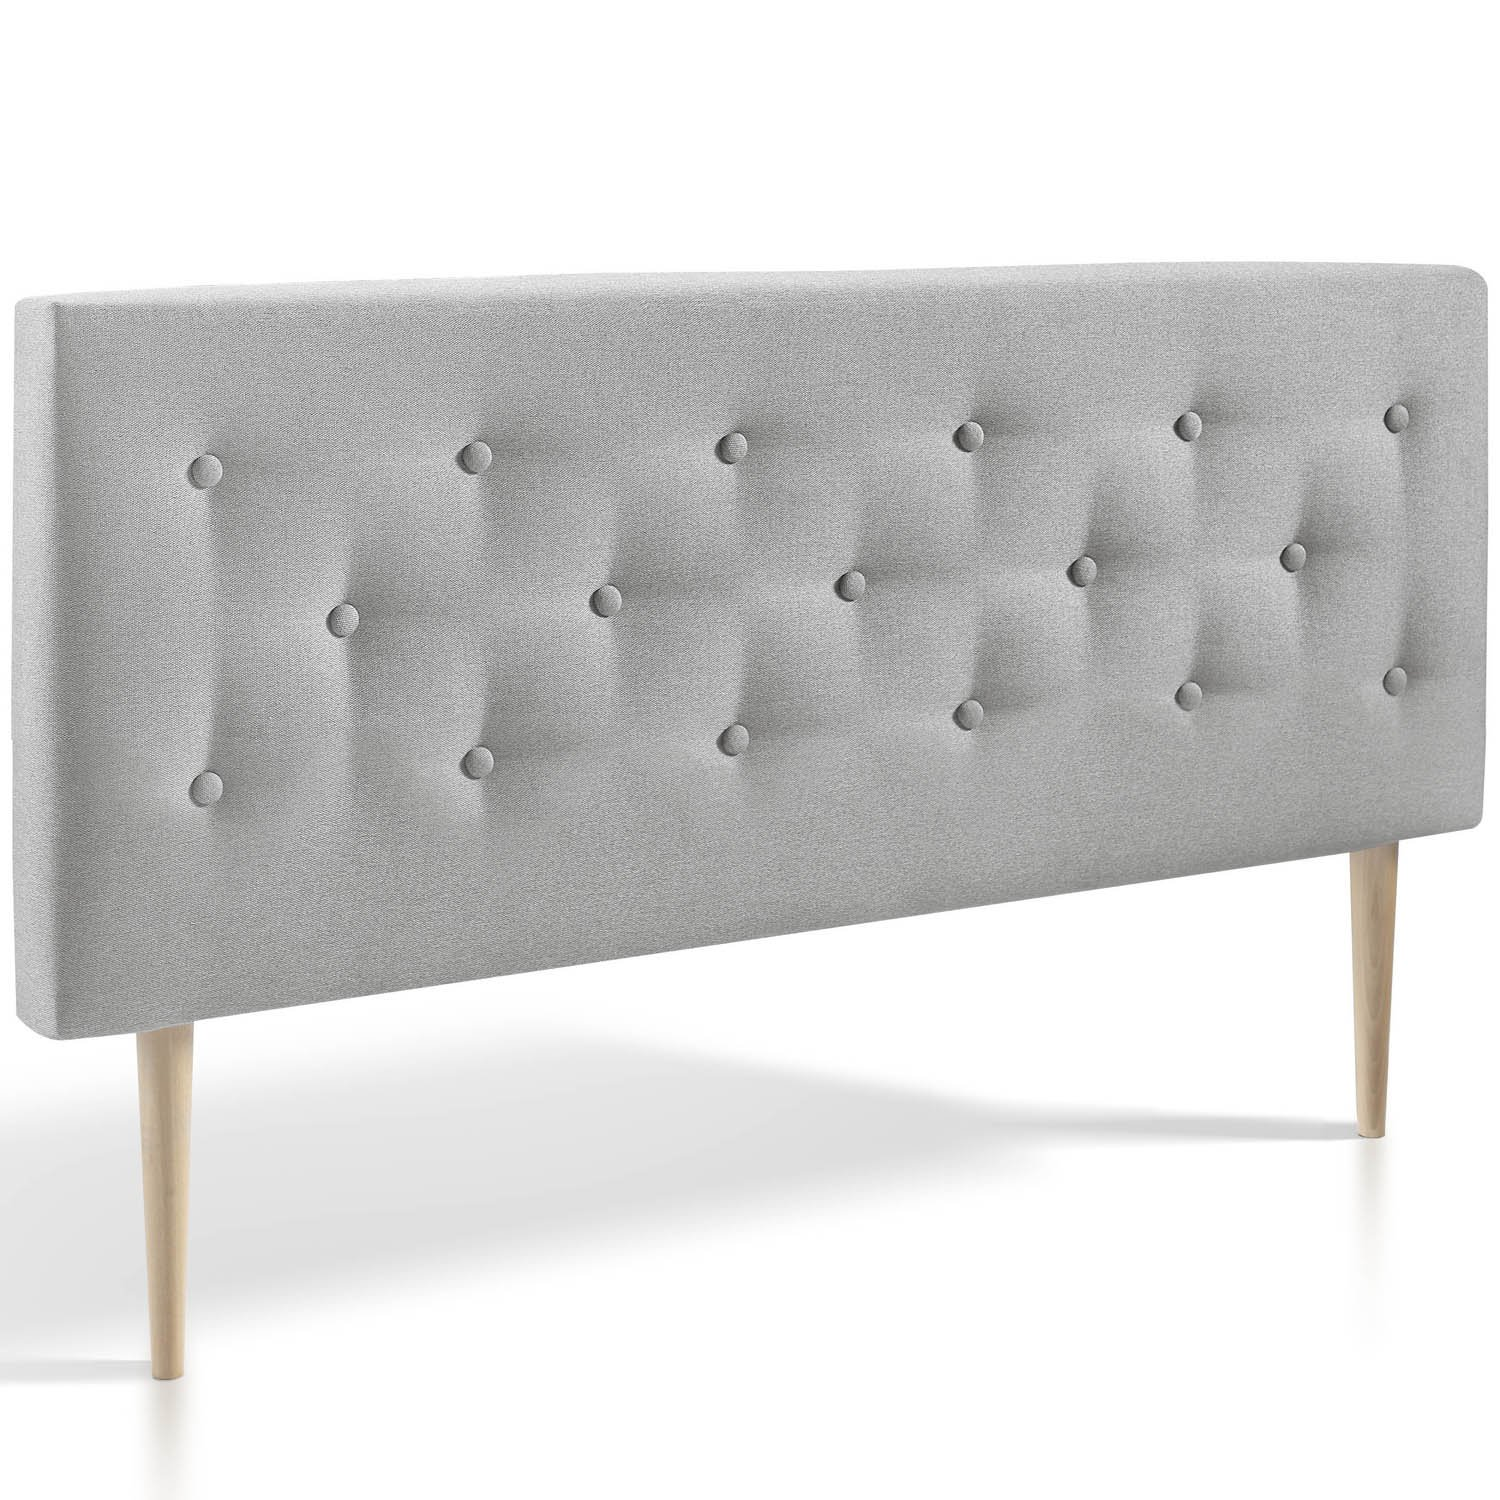 Best photos tete de lit contemporary - Tete de lit rangement 140 ...